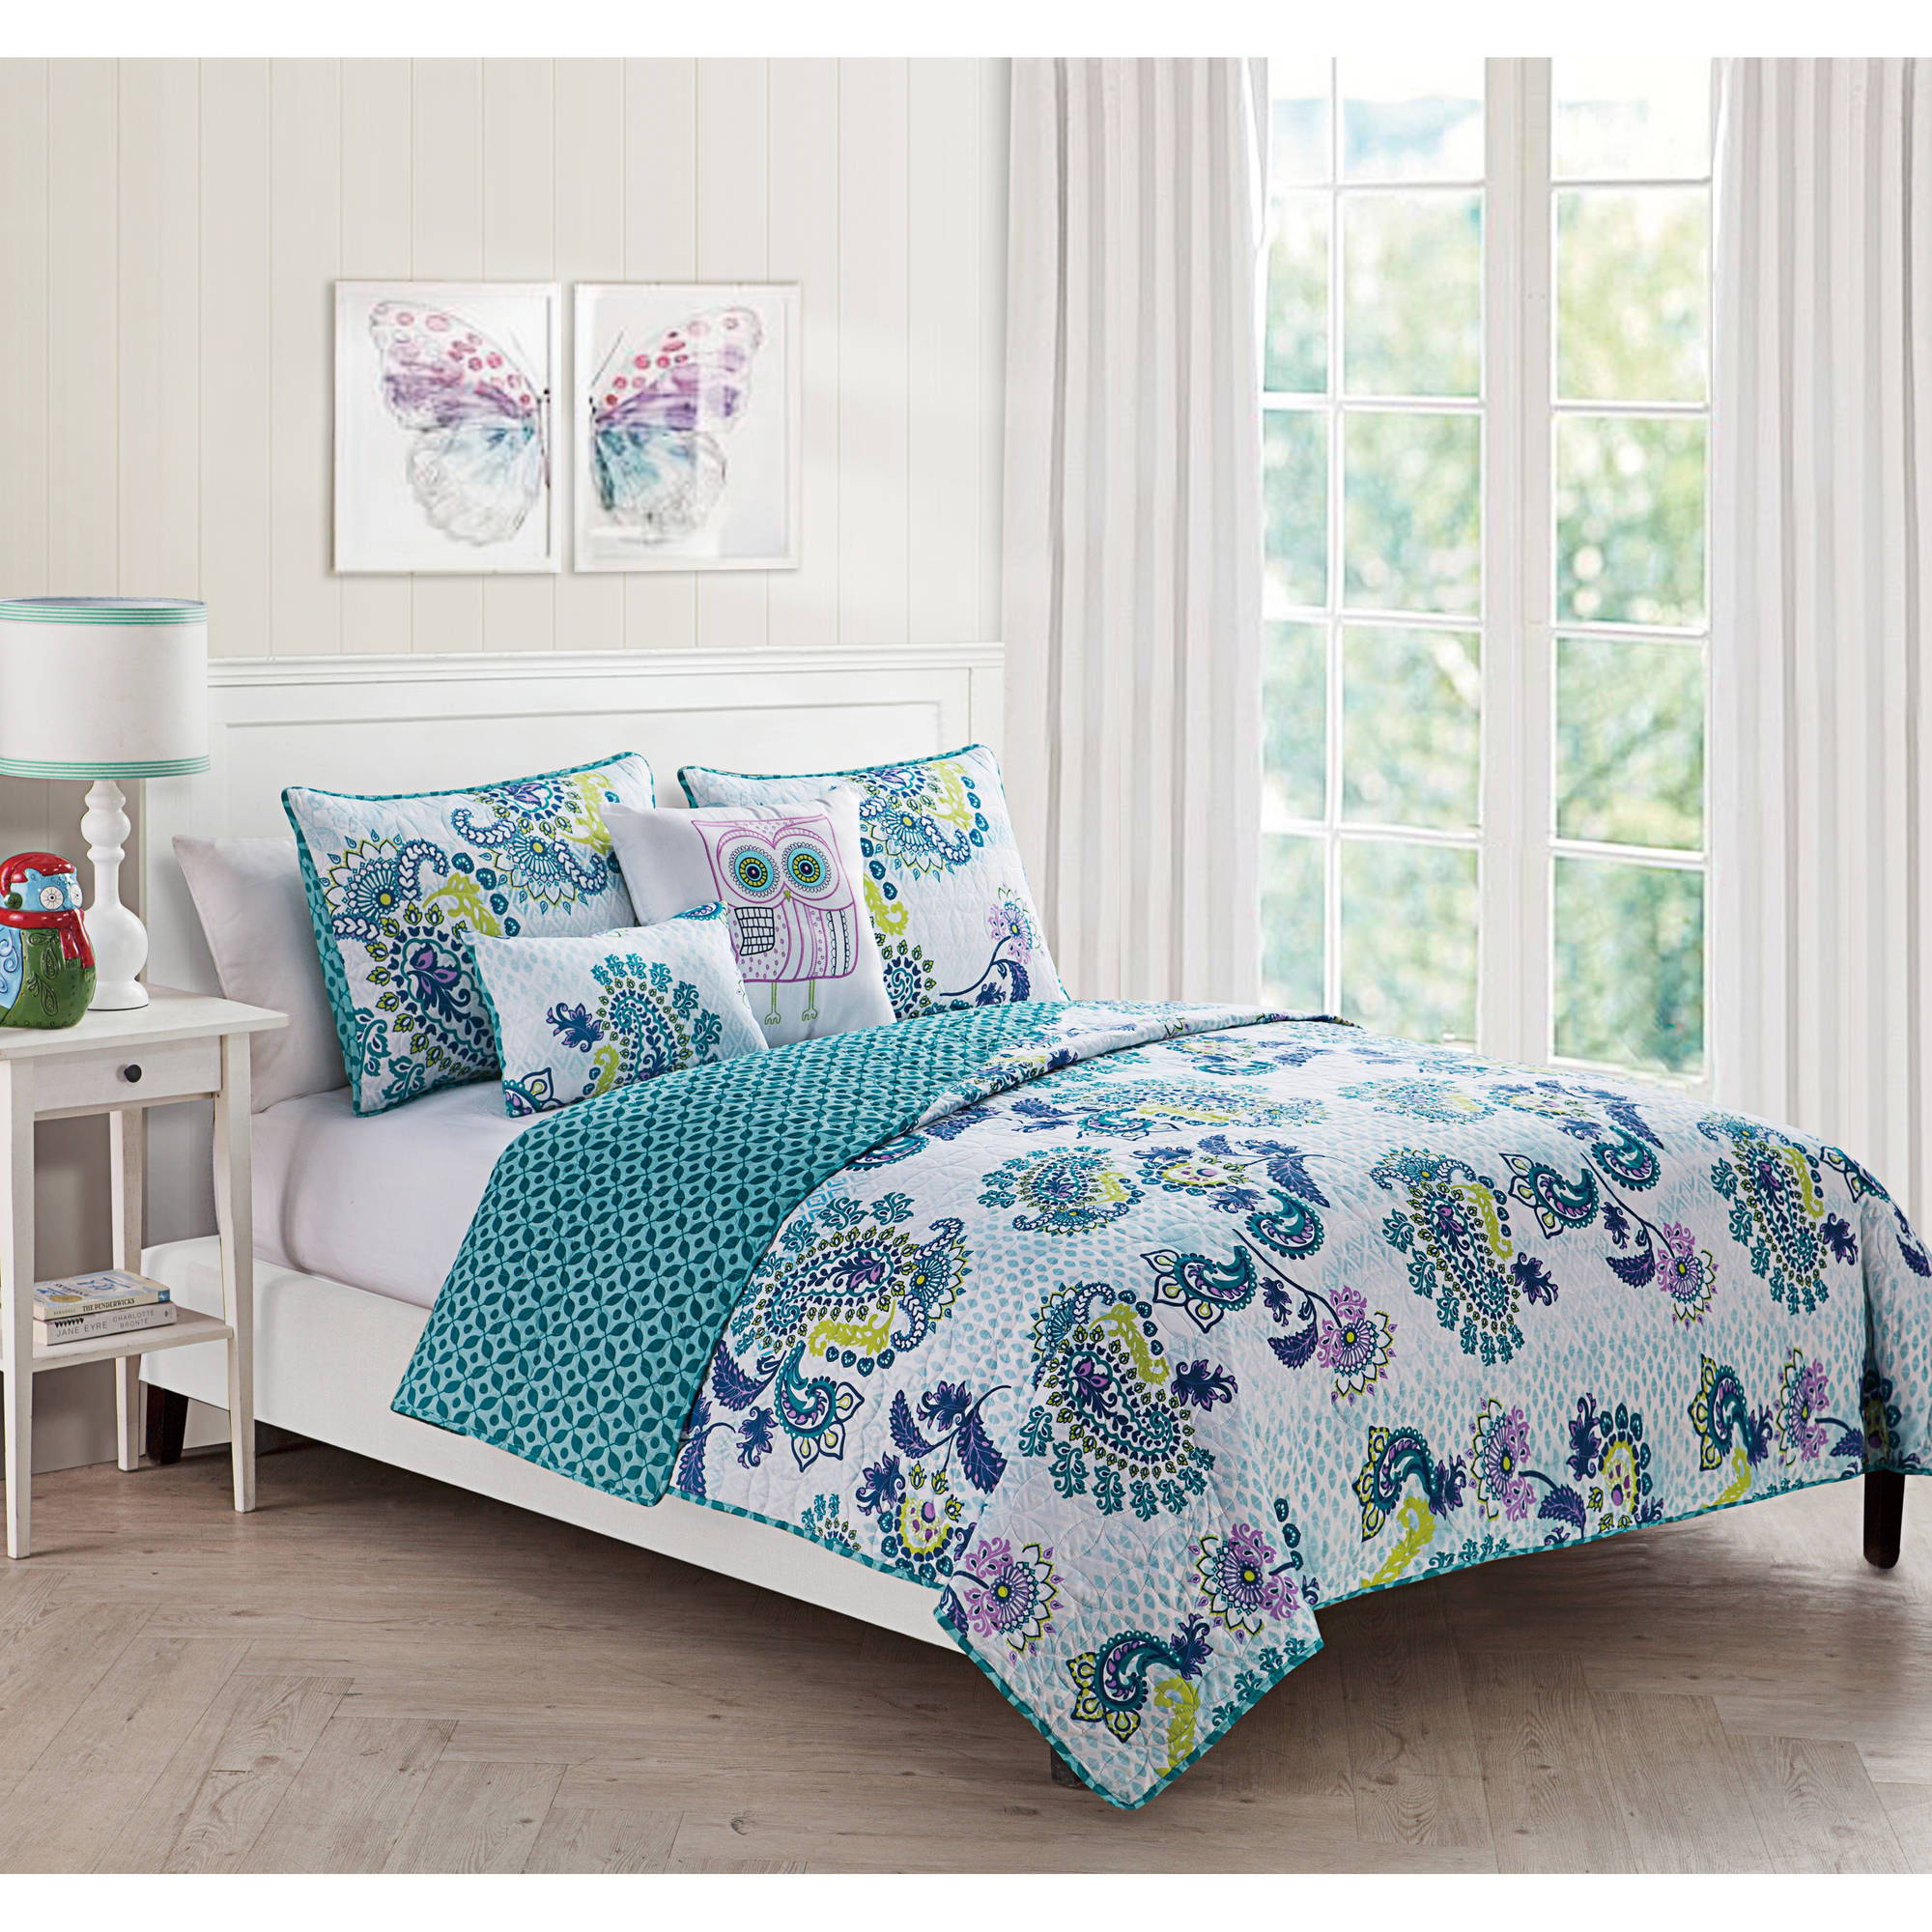 owl bedding - vcny samantha multicolored paisley piece reversible bedding quilt setdecorative owl